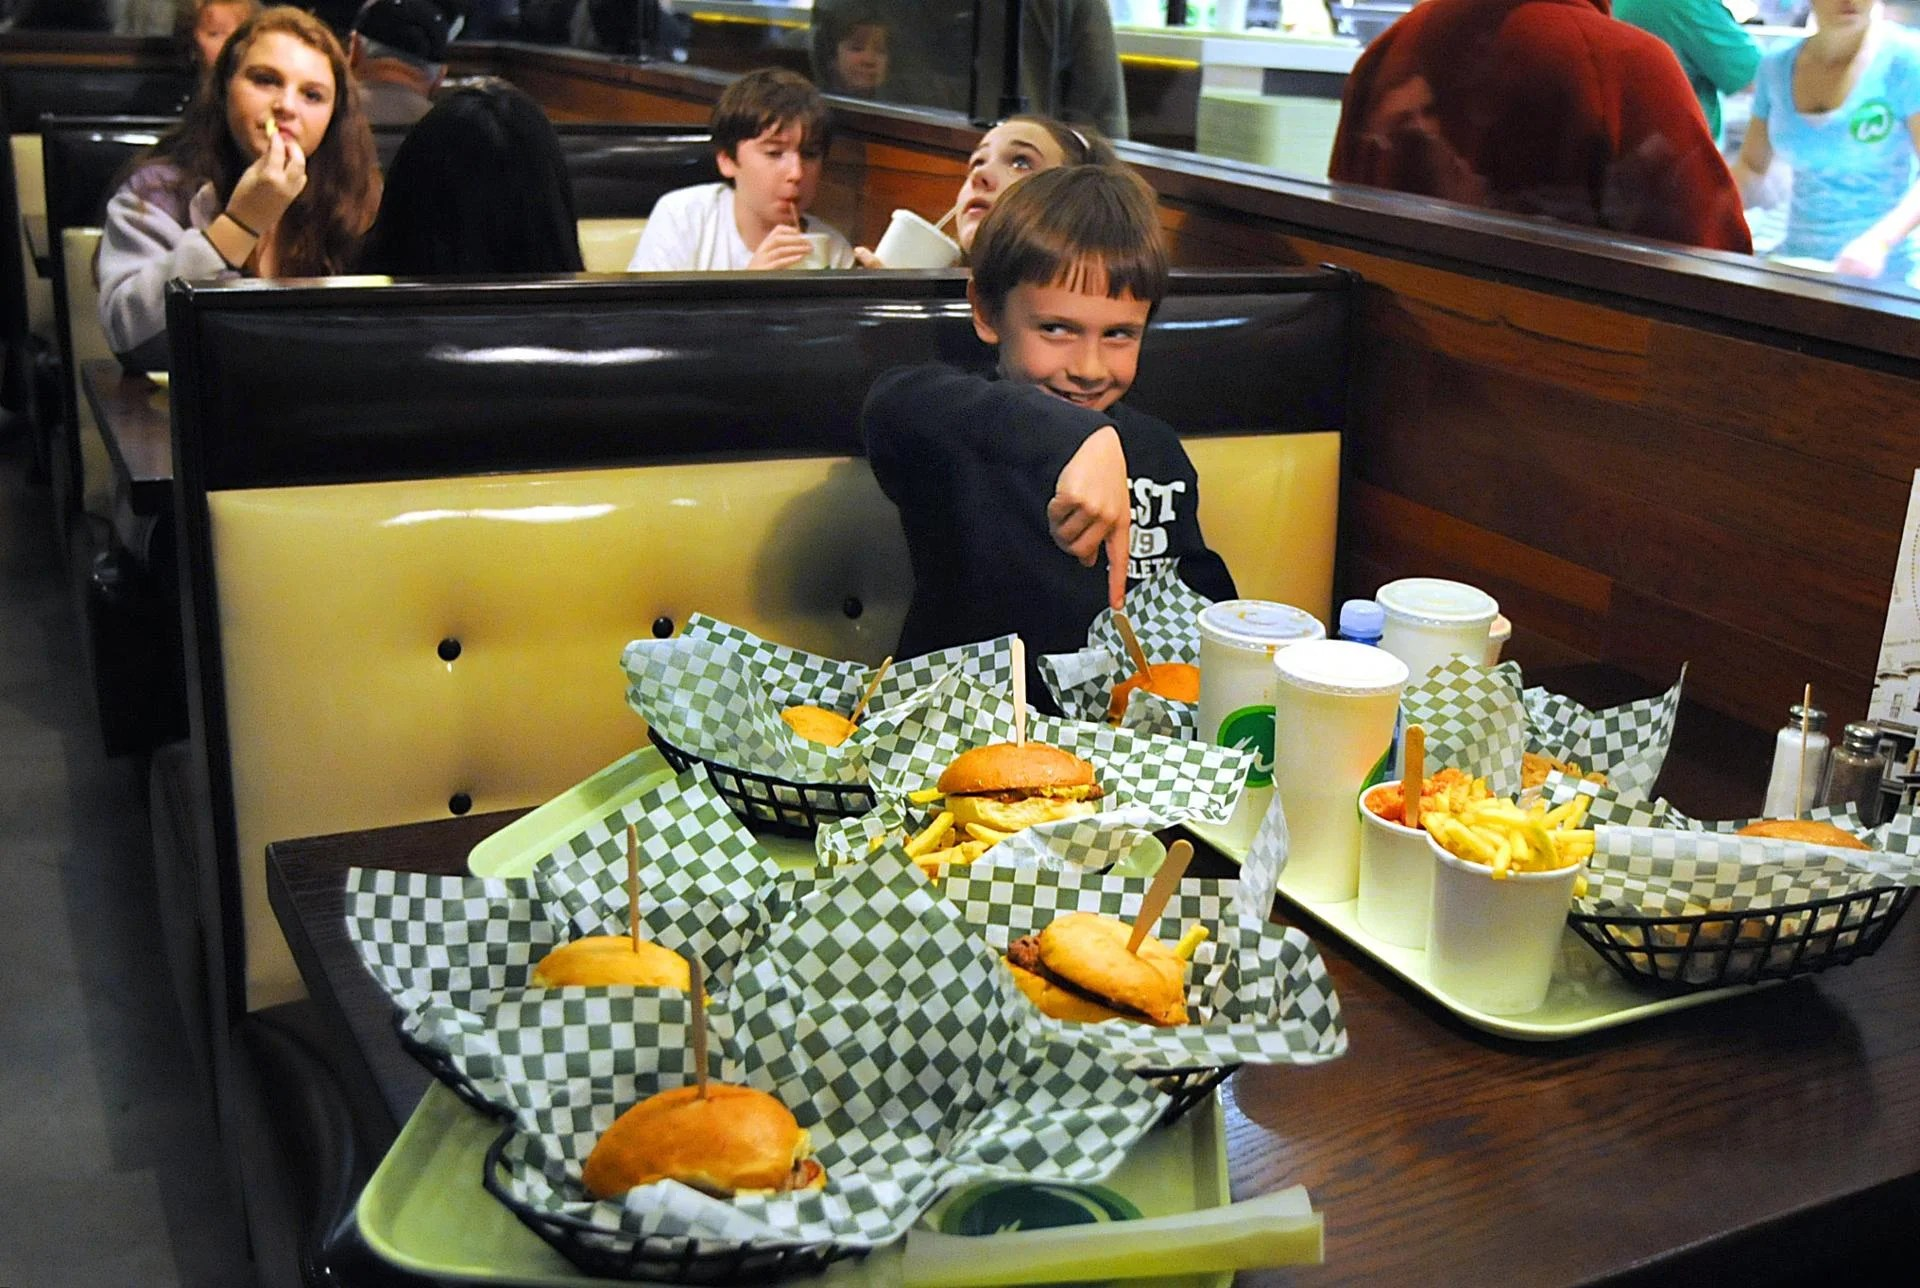 Wahlburgers is looking to expand its restaurants brand beyond its first shop in Hingham.